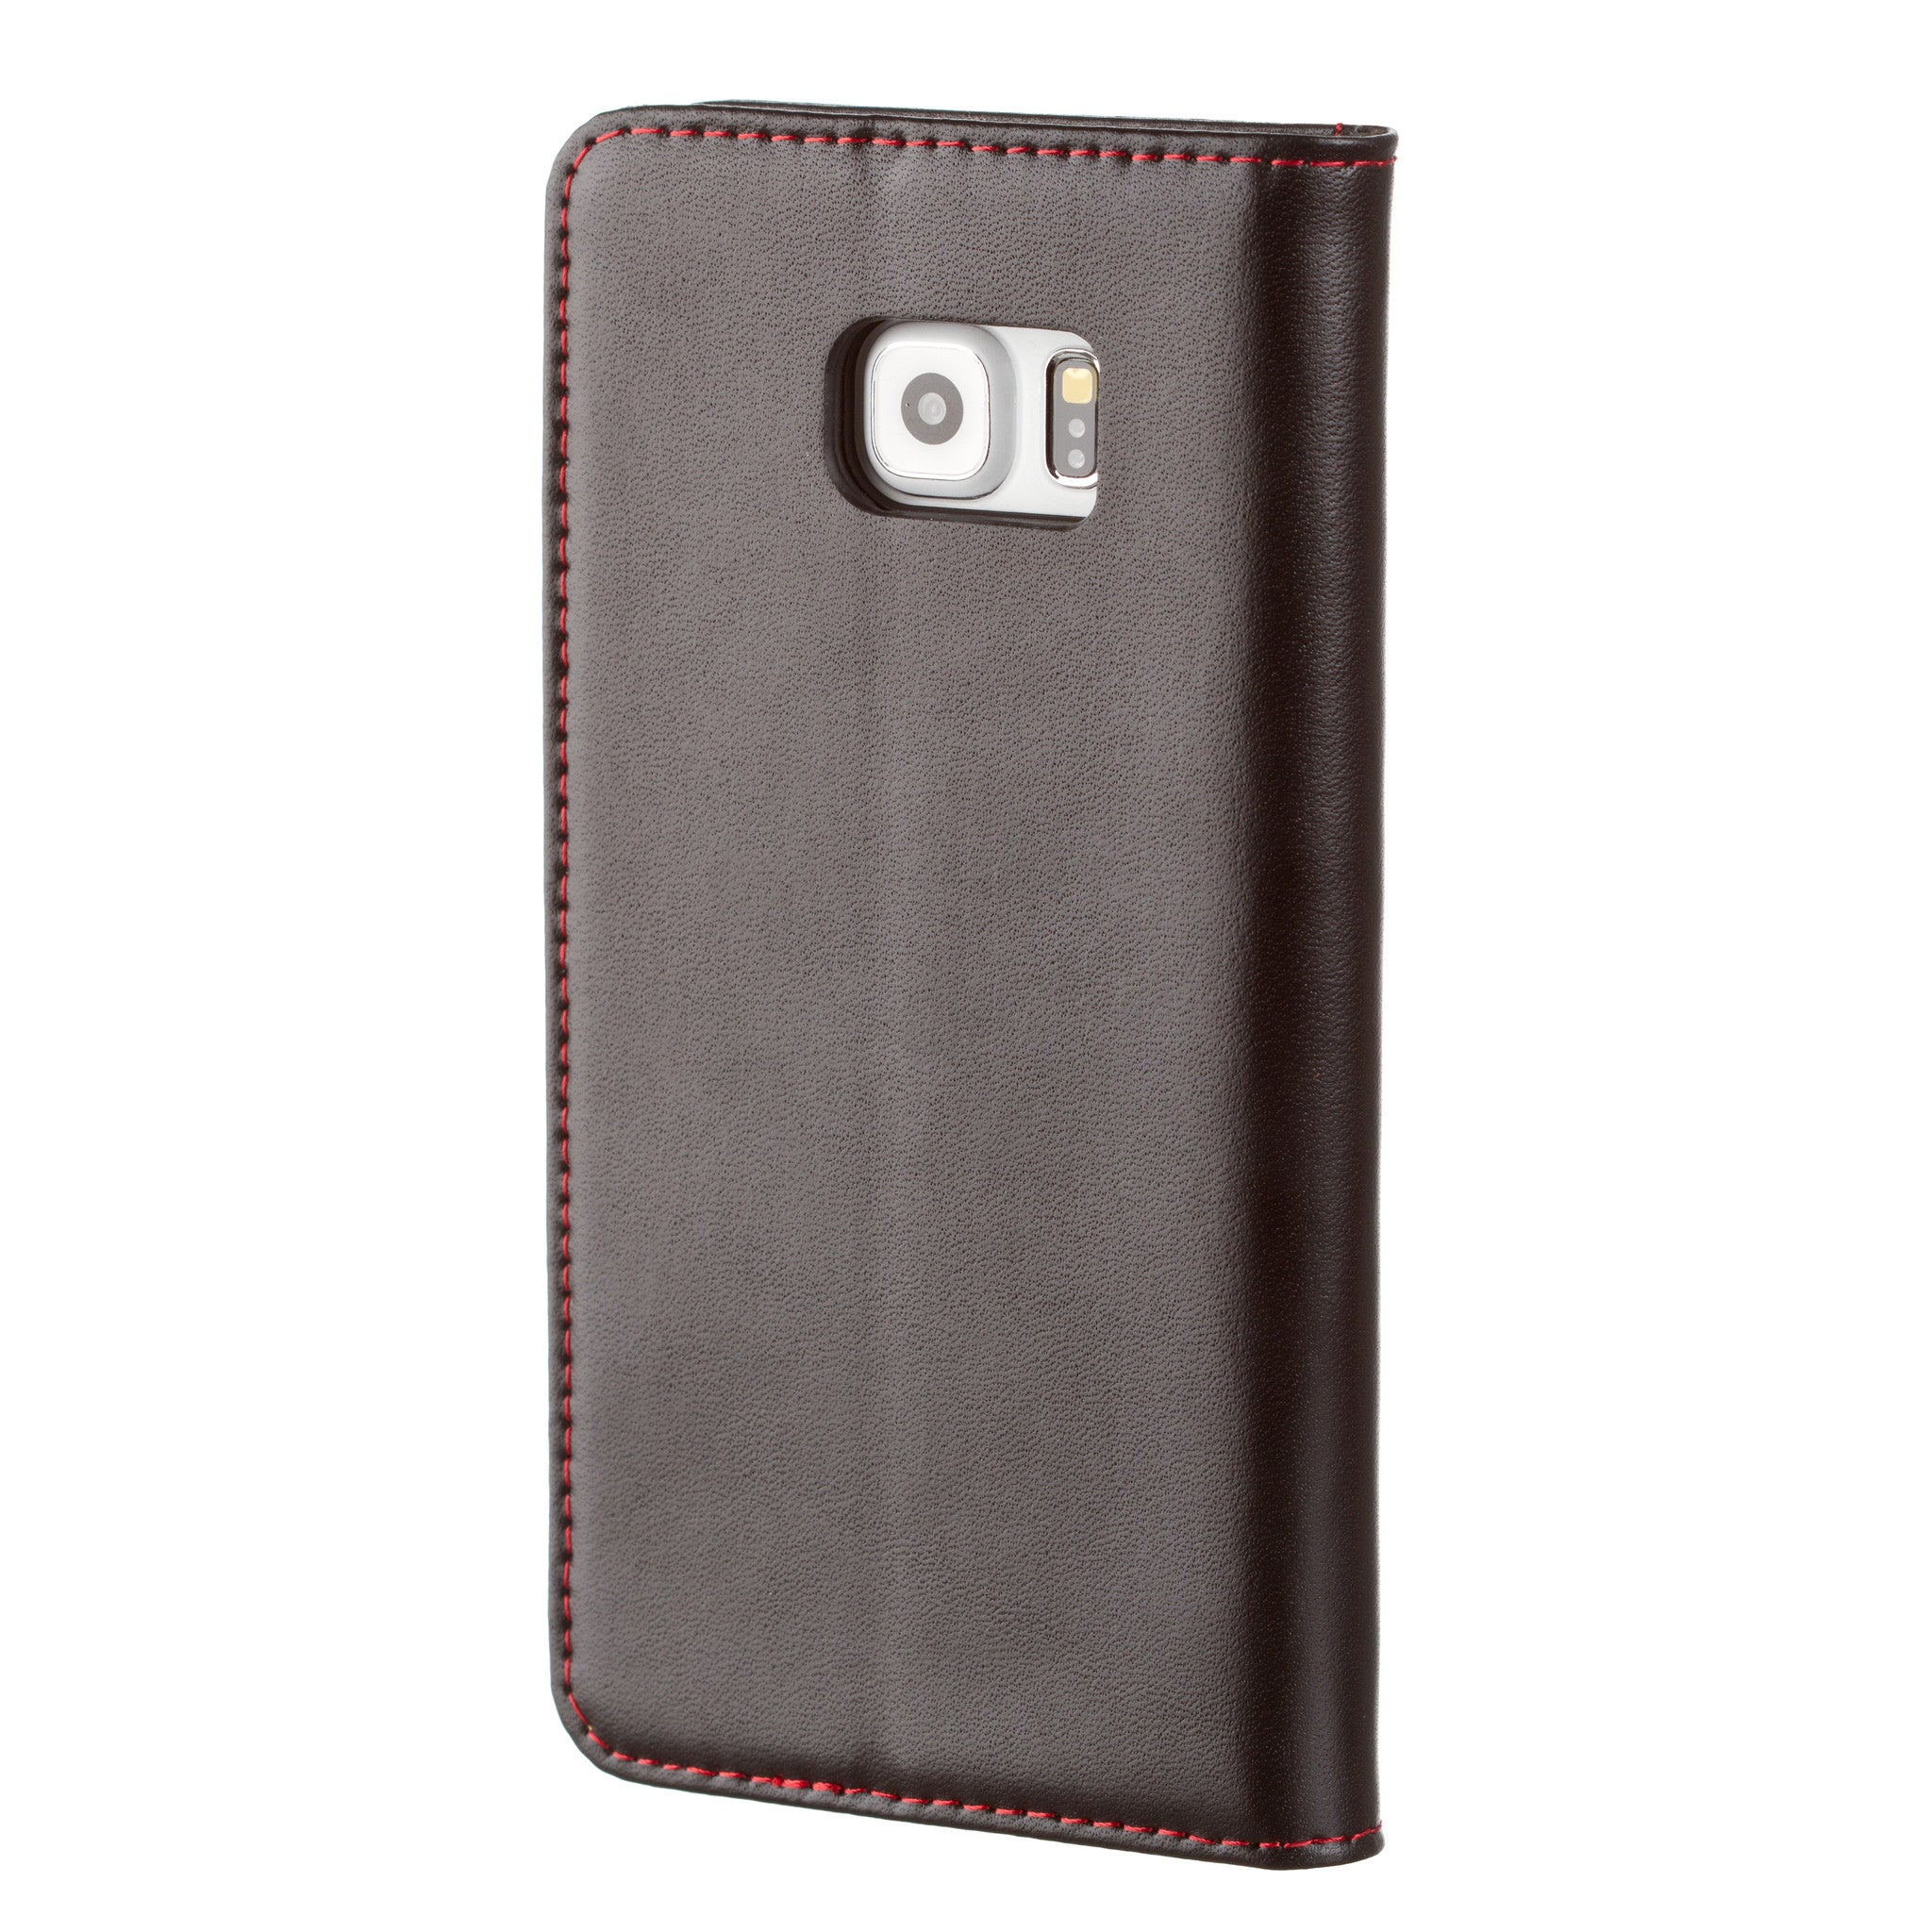 detailed look a440f 63427 Samsung Galaxy S6 Edge+ (Plus) Black Italian Leather Case, with Stand  Function